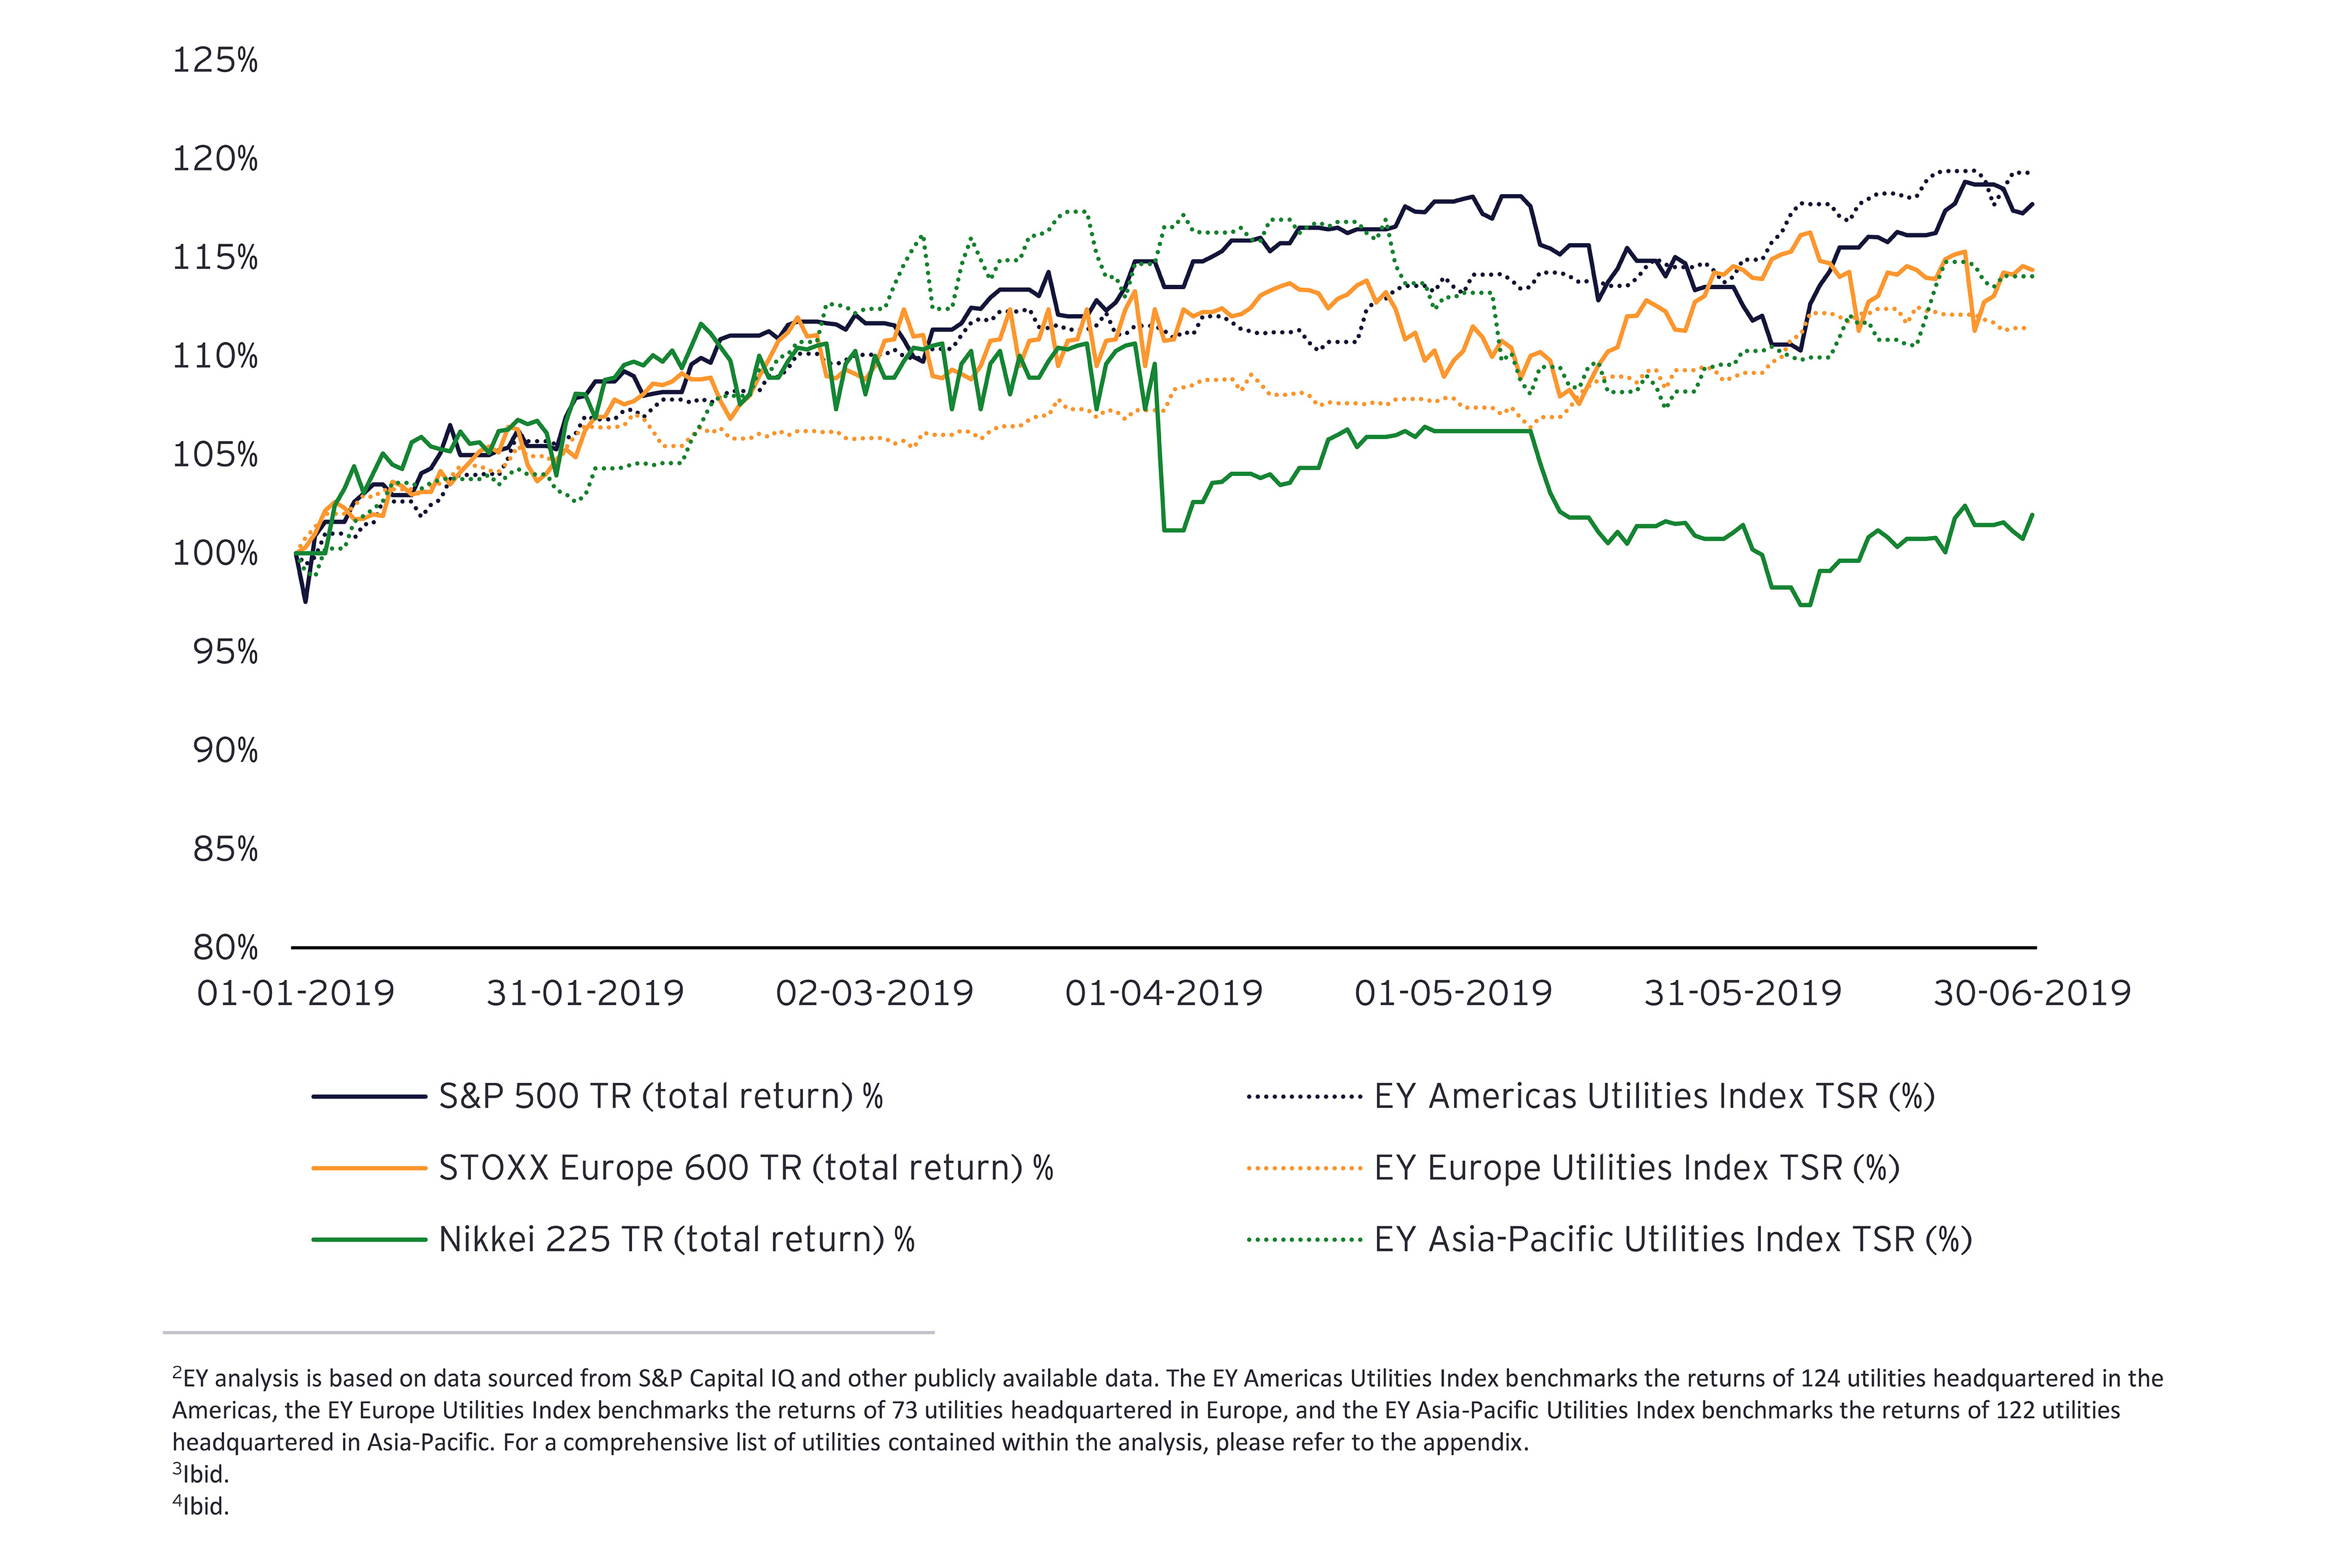 Total shareholder return (TSR) and valuation analysis graph